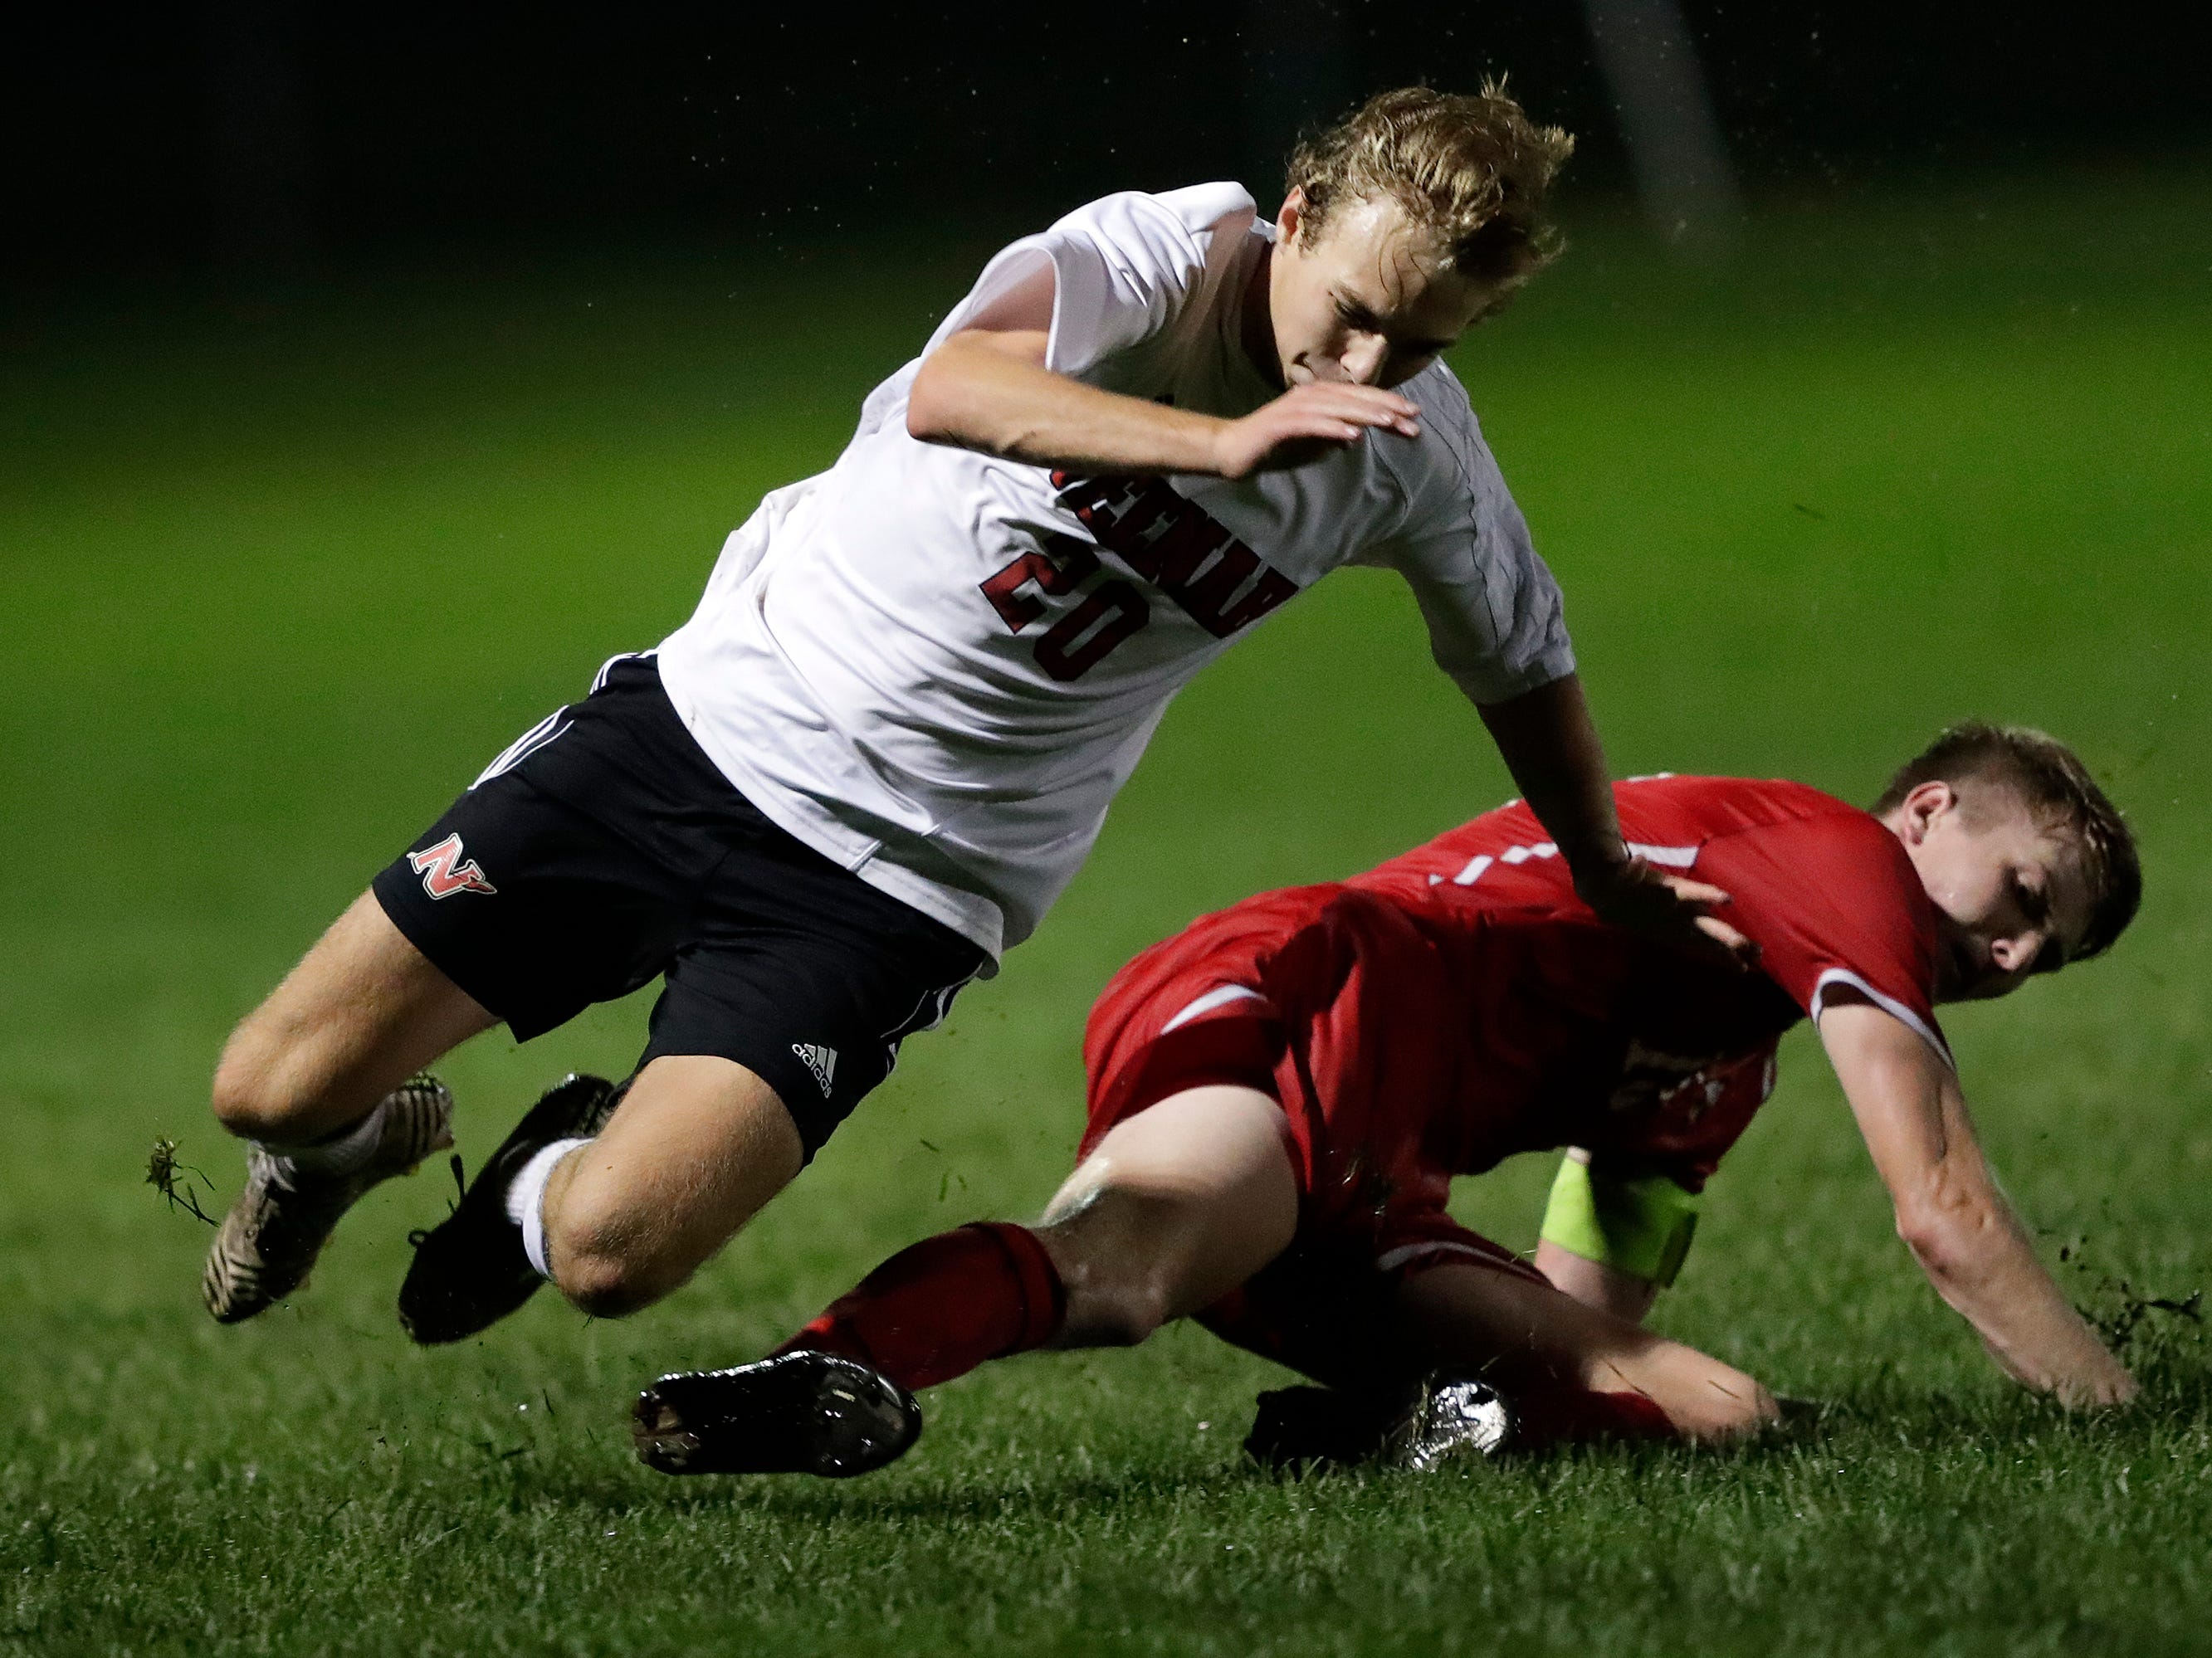 Neenah High School's Gabe Alexander (20) is tackled by Kimberly High School's Parker Schimmers (13) during their boys soccer game Tuesday, Sept. 4, 2018, at Papermaker Field in Kimberly, Wis. 